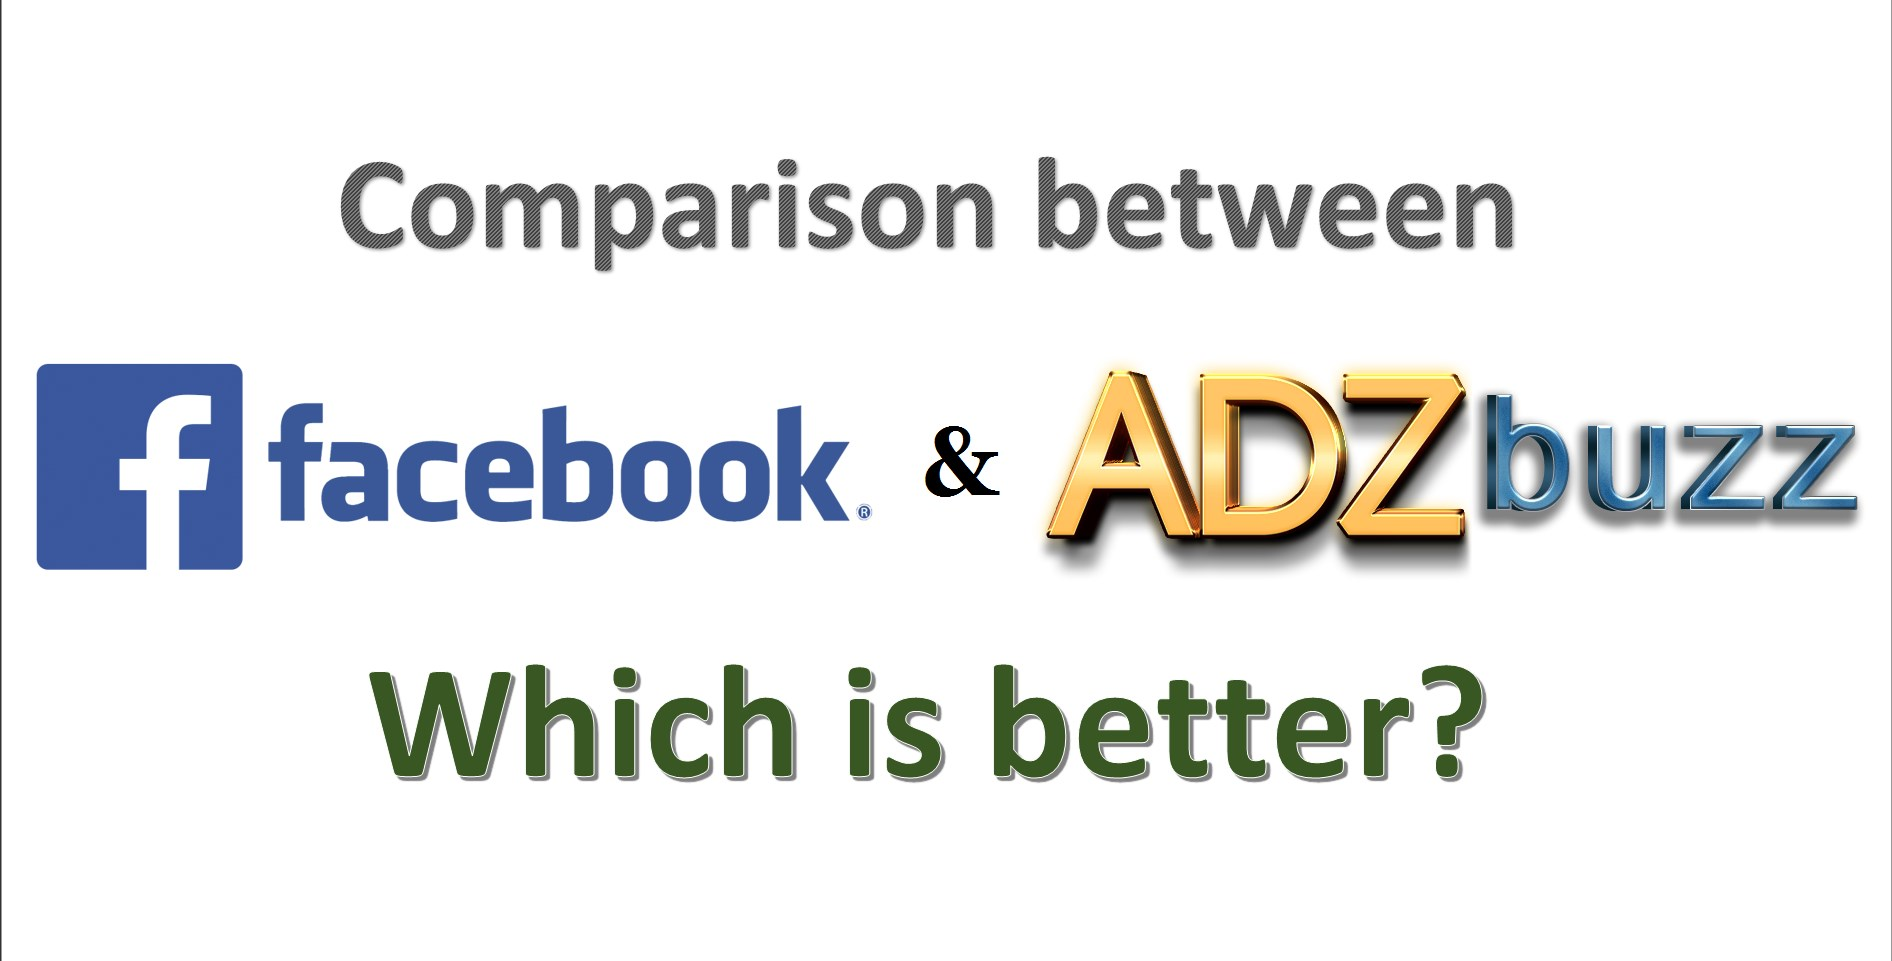 ADZbuzz vs Facebook